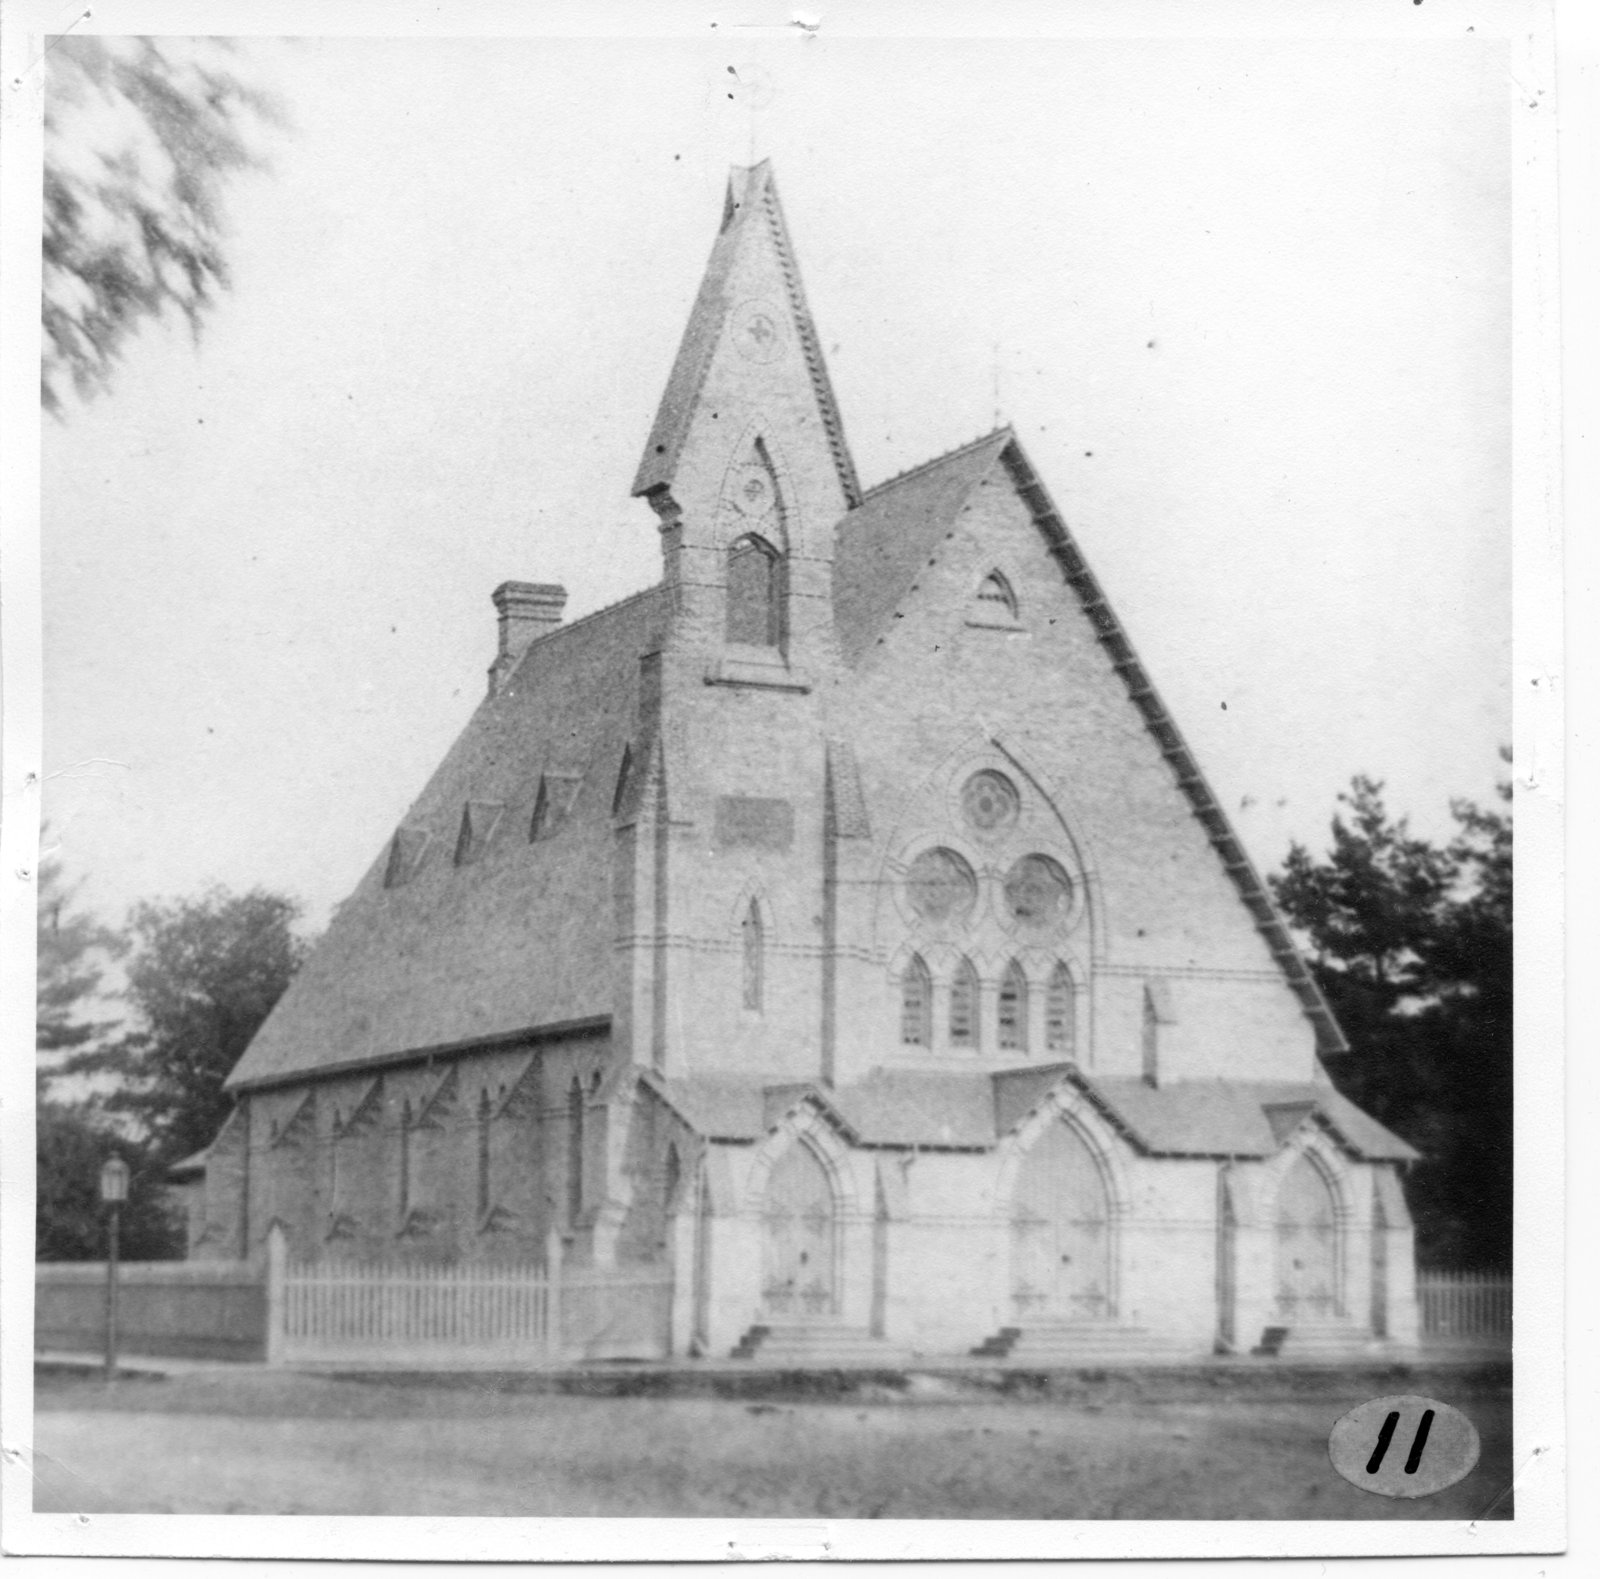 A black and white print showing a front and side view of Bishop Cronyn Memorial Church in Midtown.